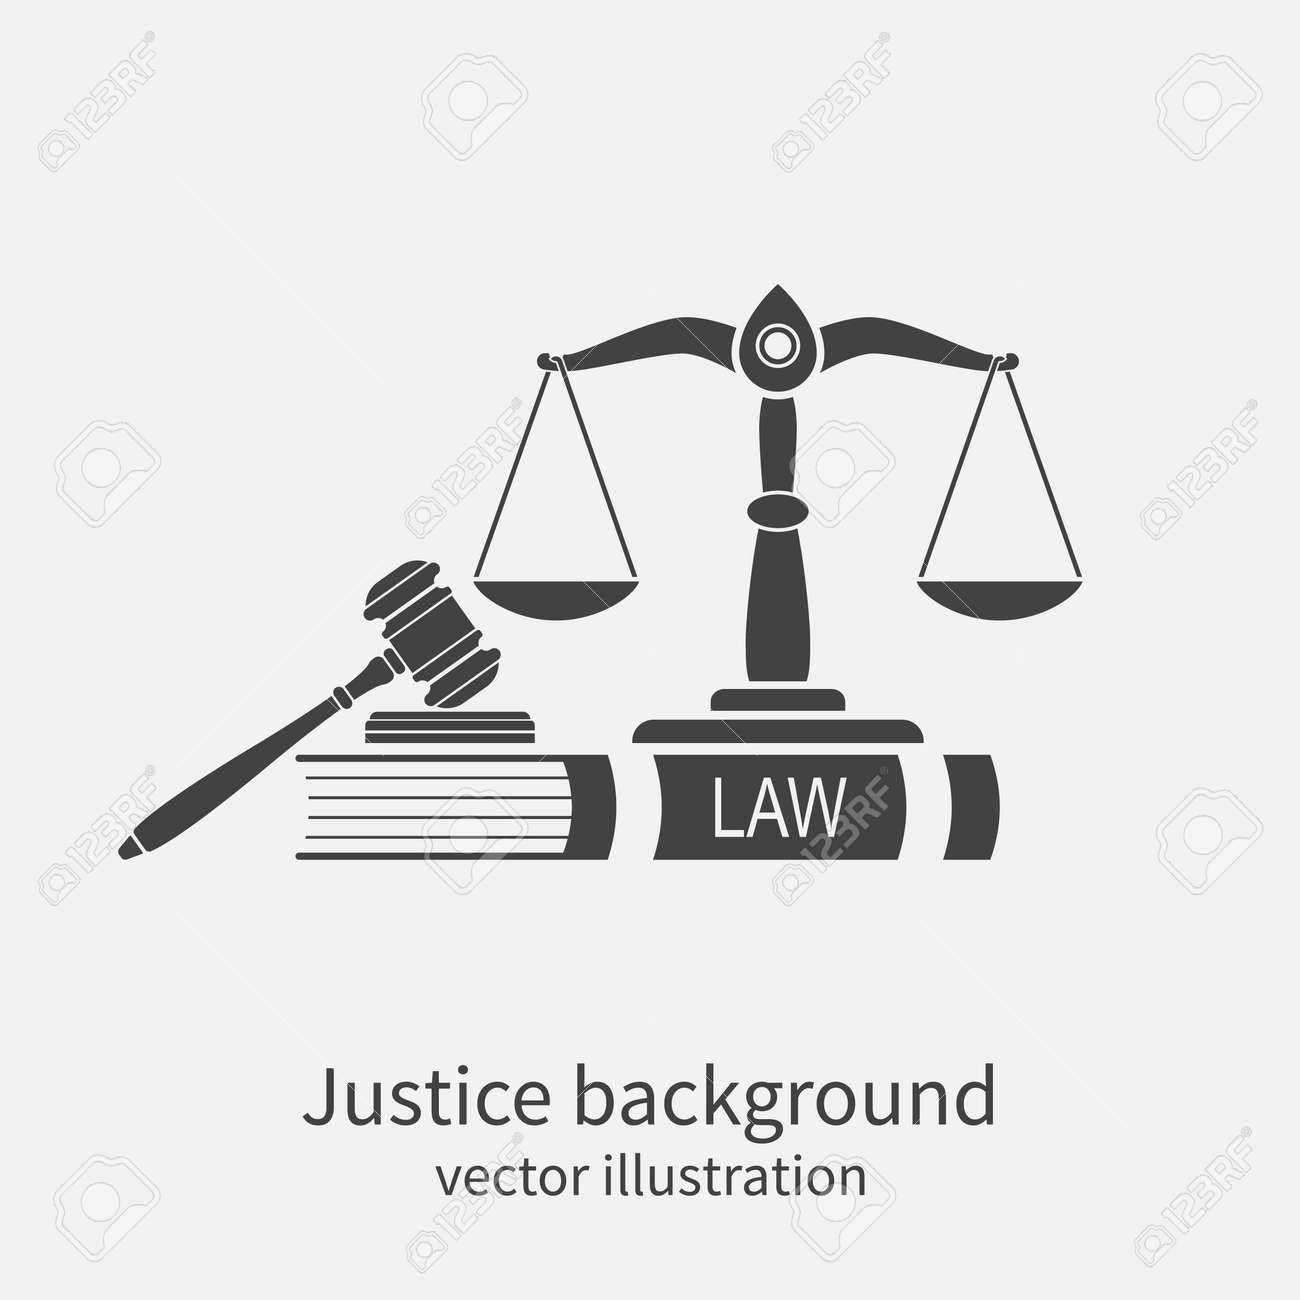 Symbol Of Law And Justice Concept Law And Justice Scales Of